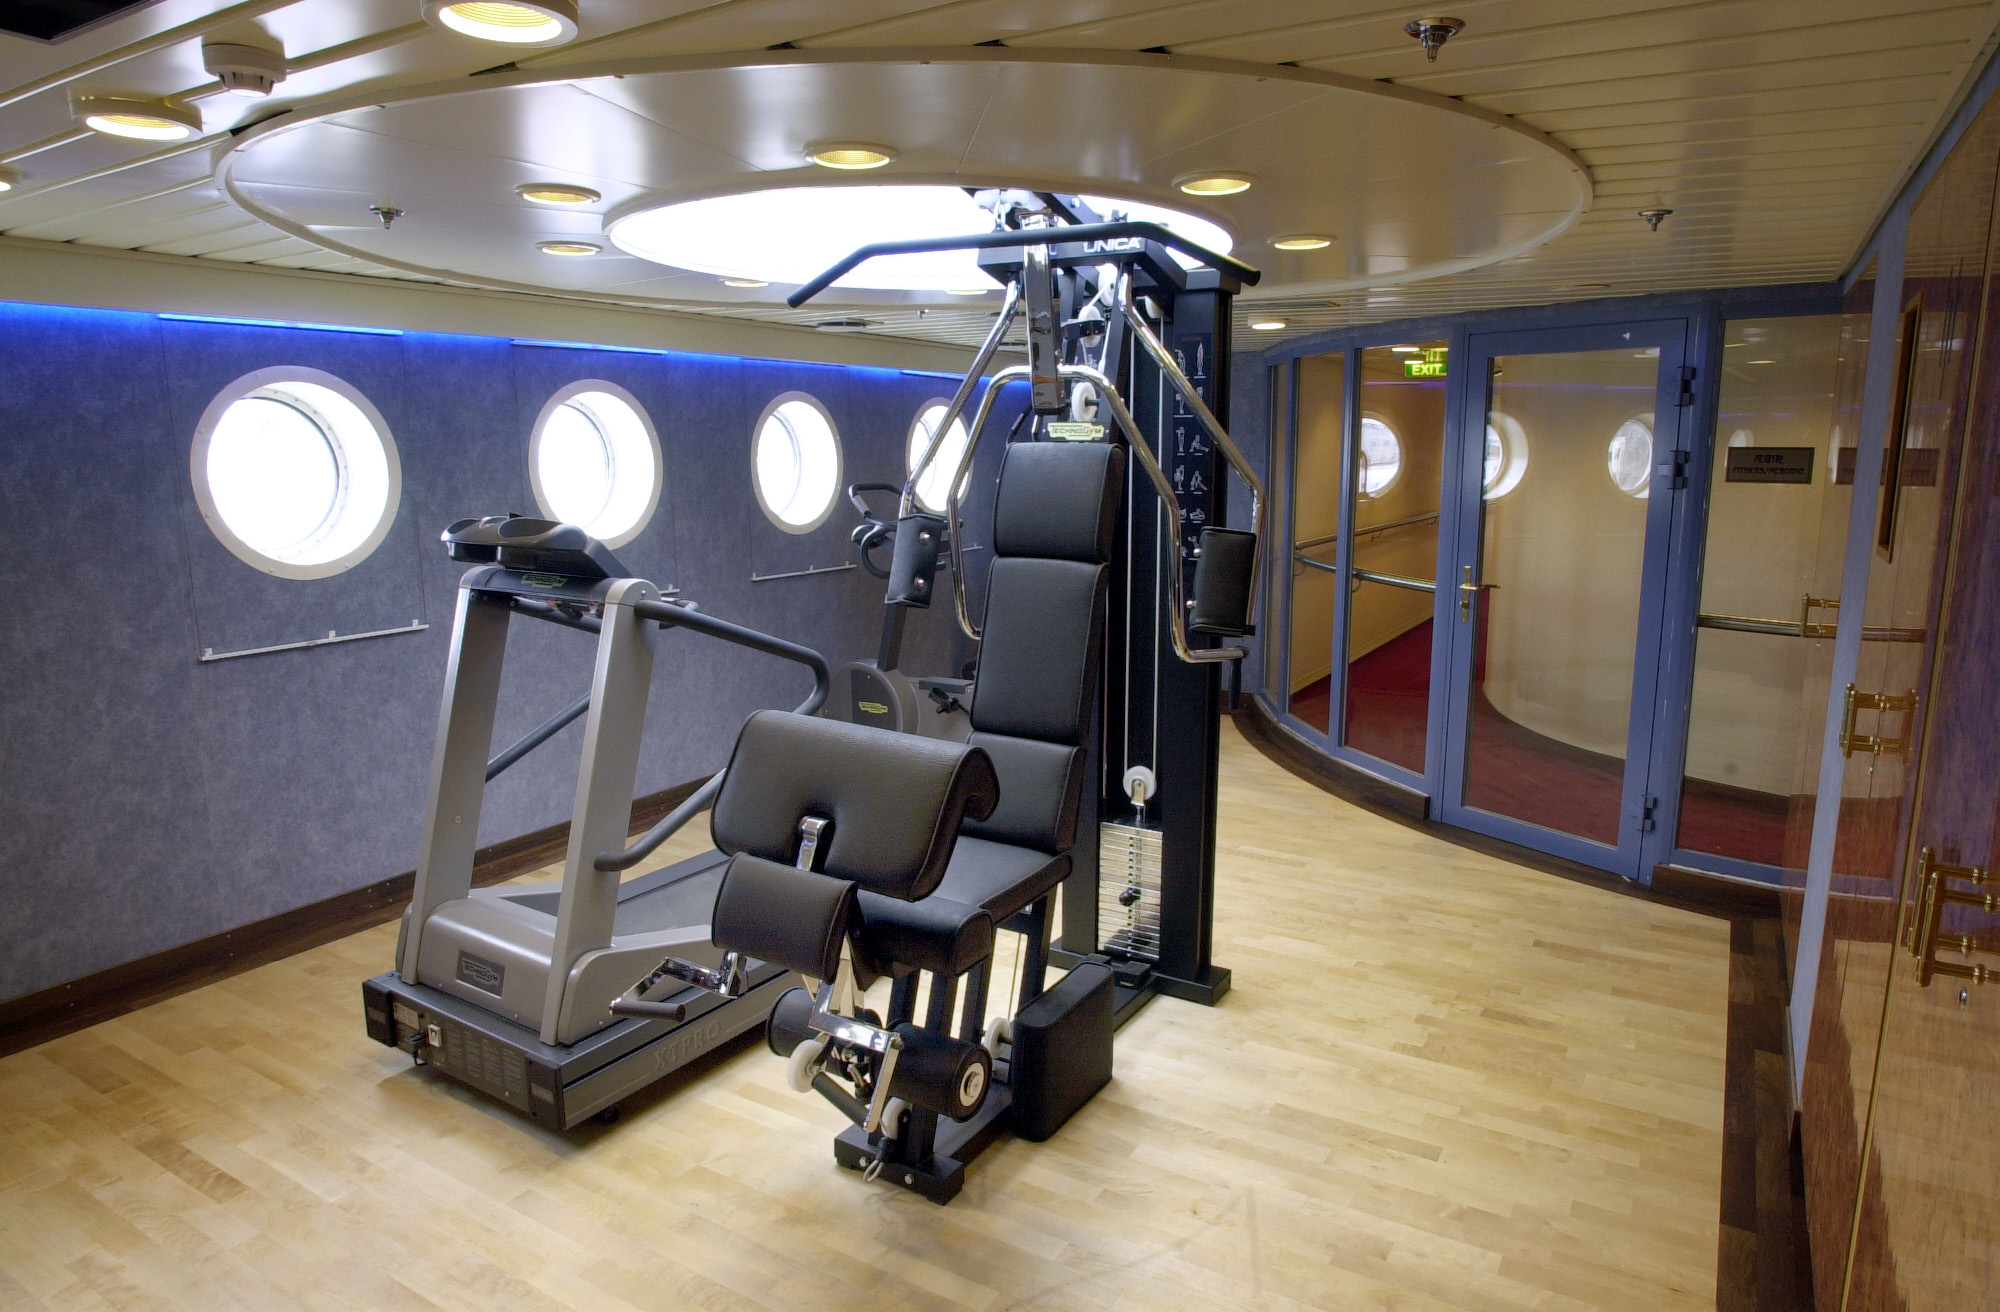 Hurtigruten Cruise Lines MS Finnmarken Interior Fitness Centre.jpg